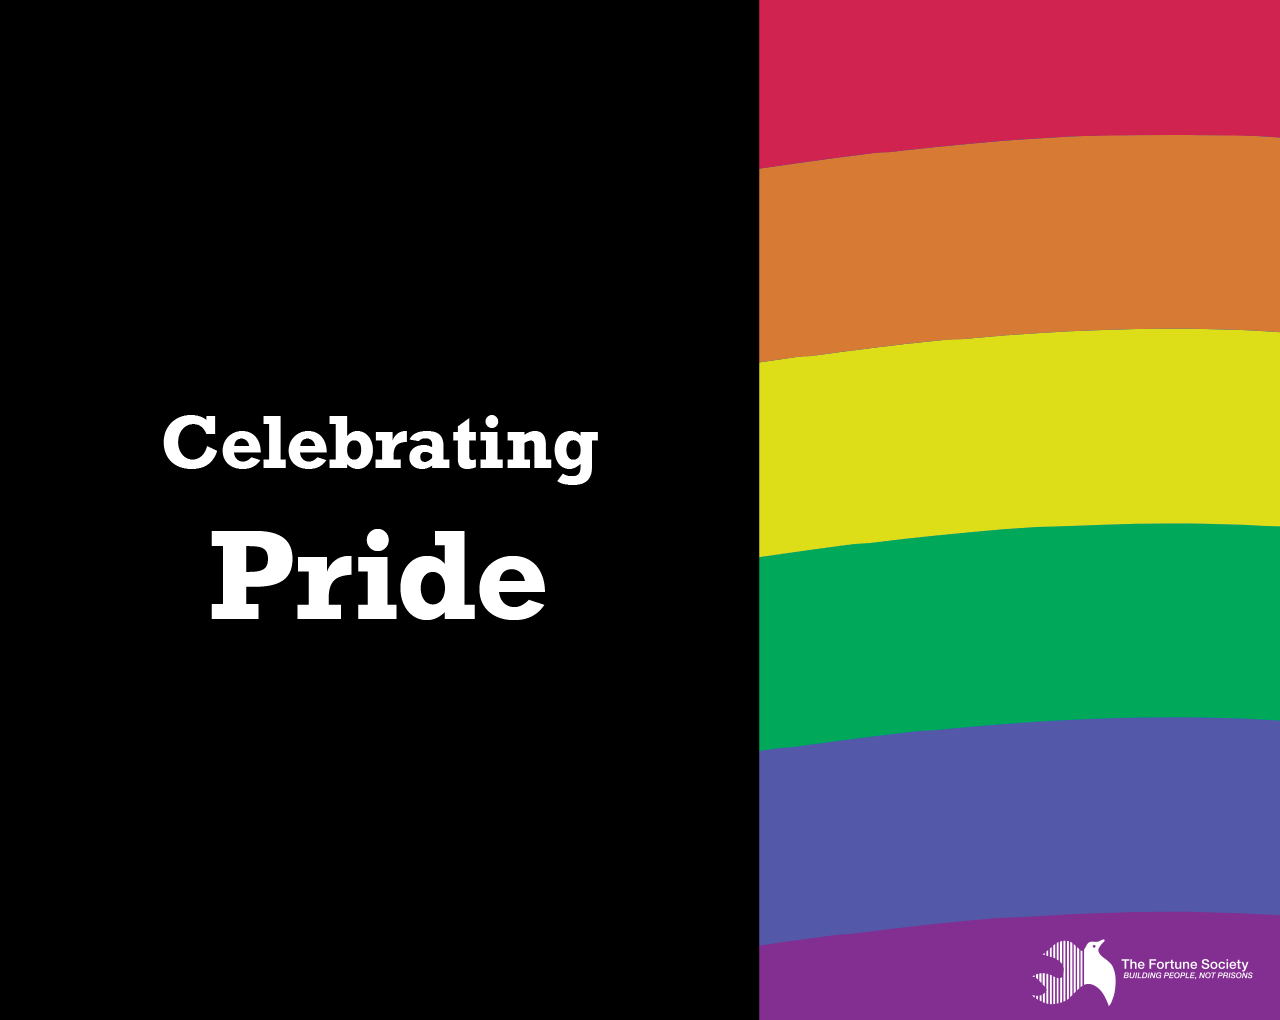 Celebrating Pride and Standing Up for Liberation